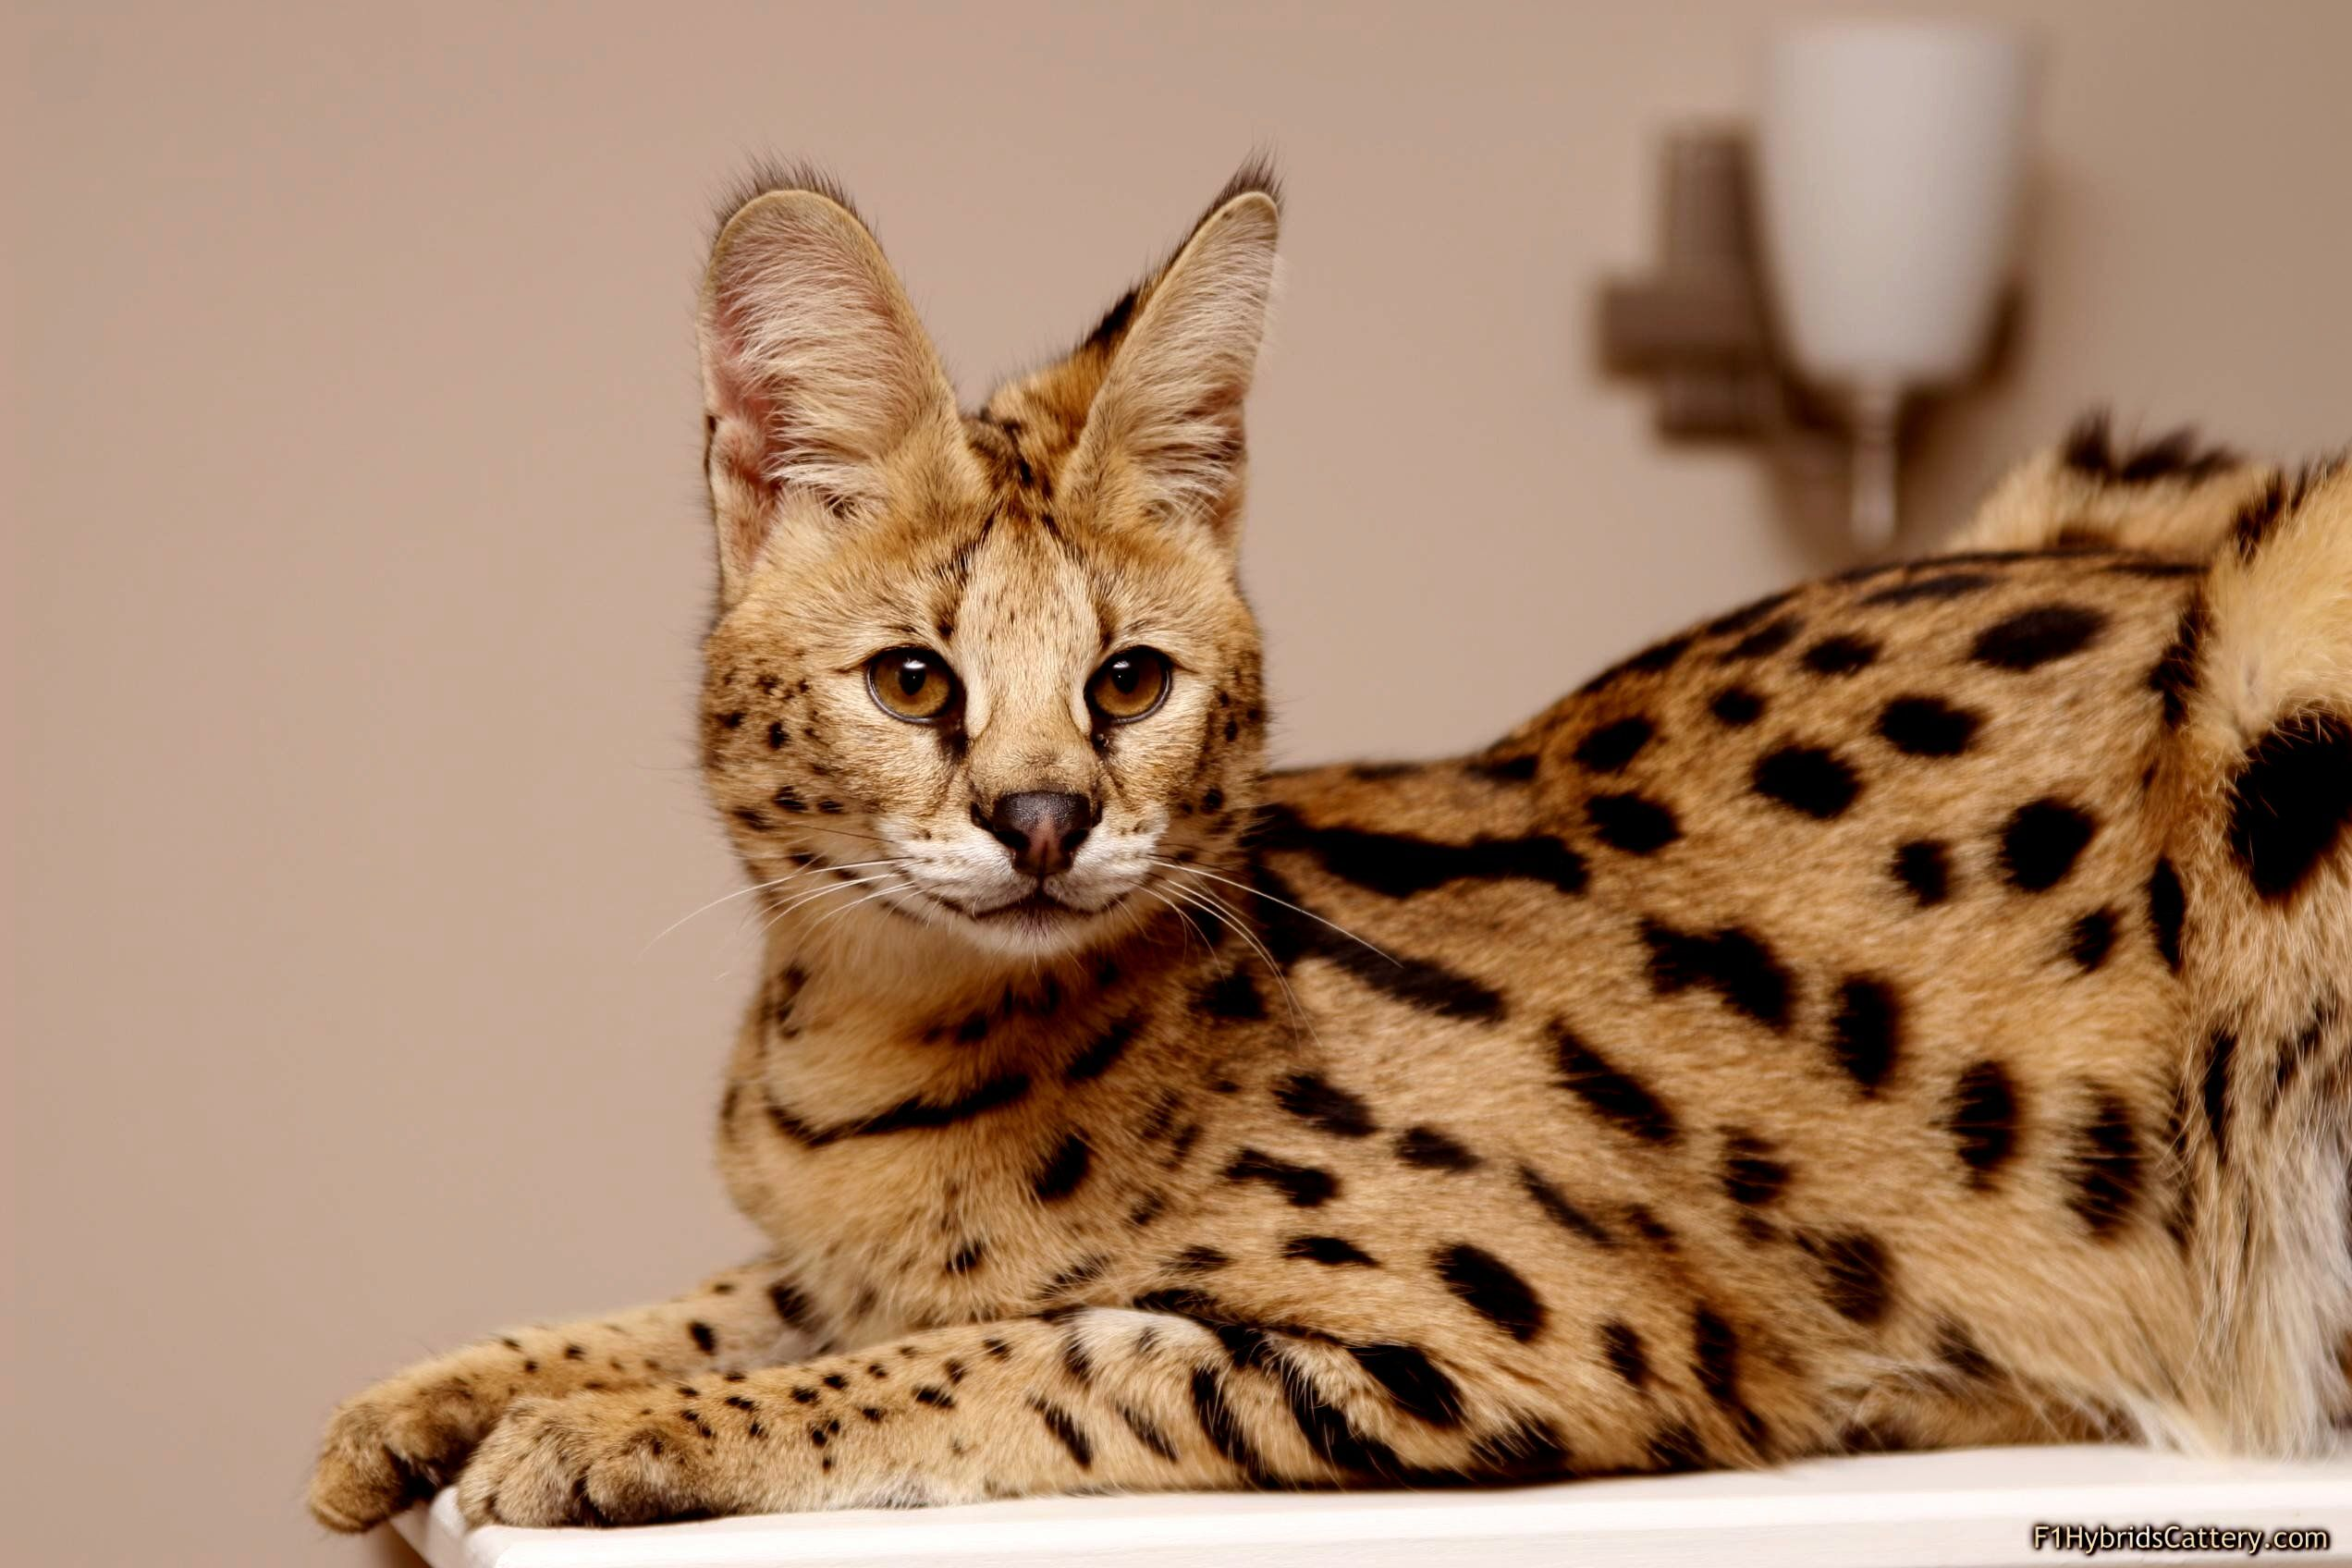 Gorgeous Wild Serval Cat Wallpapers Hd Free 222393 African Serval Cat Serval Cats Large Domestic Cat Breeds